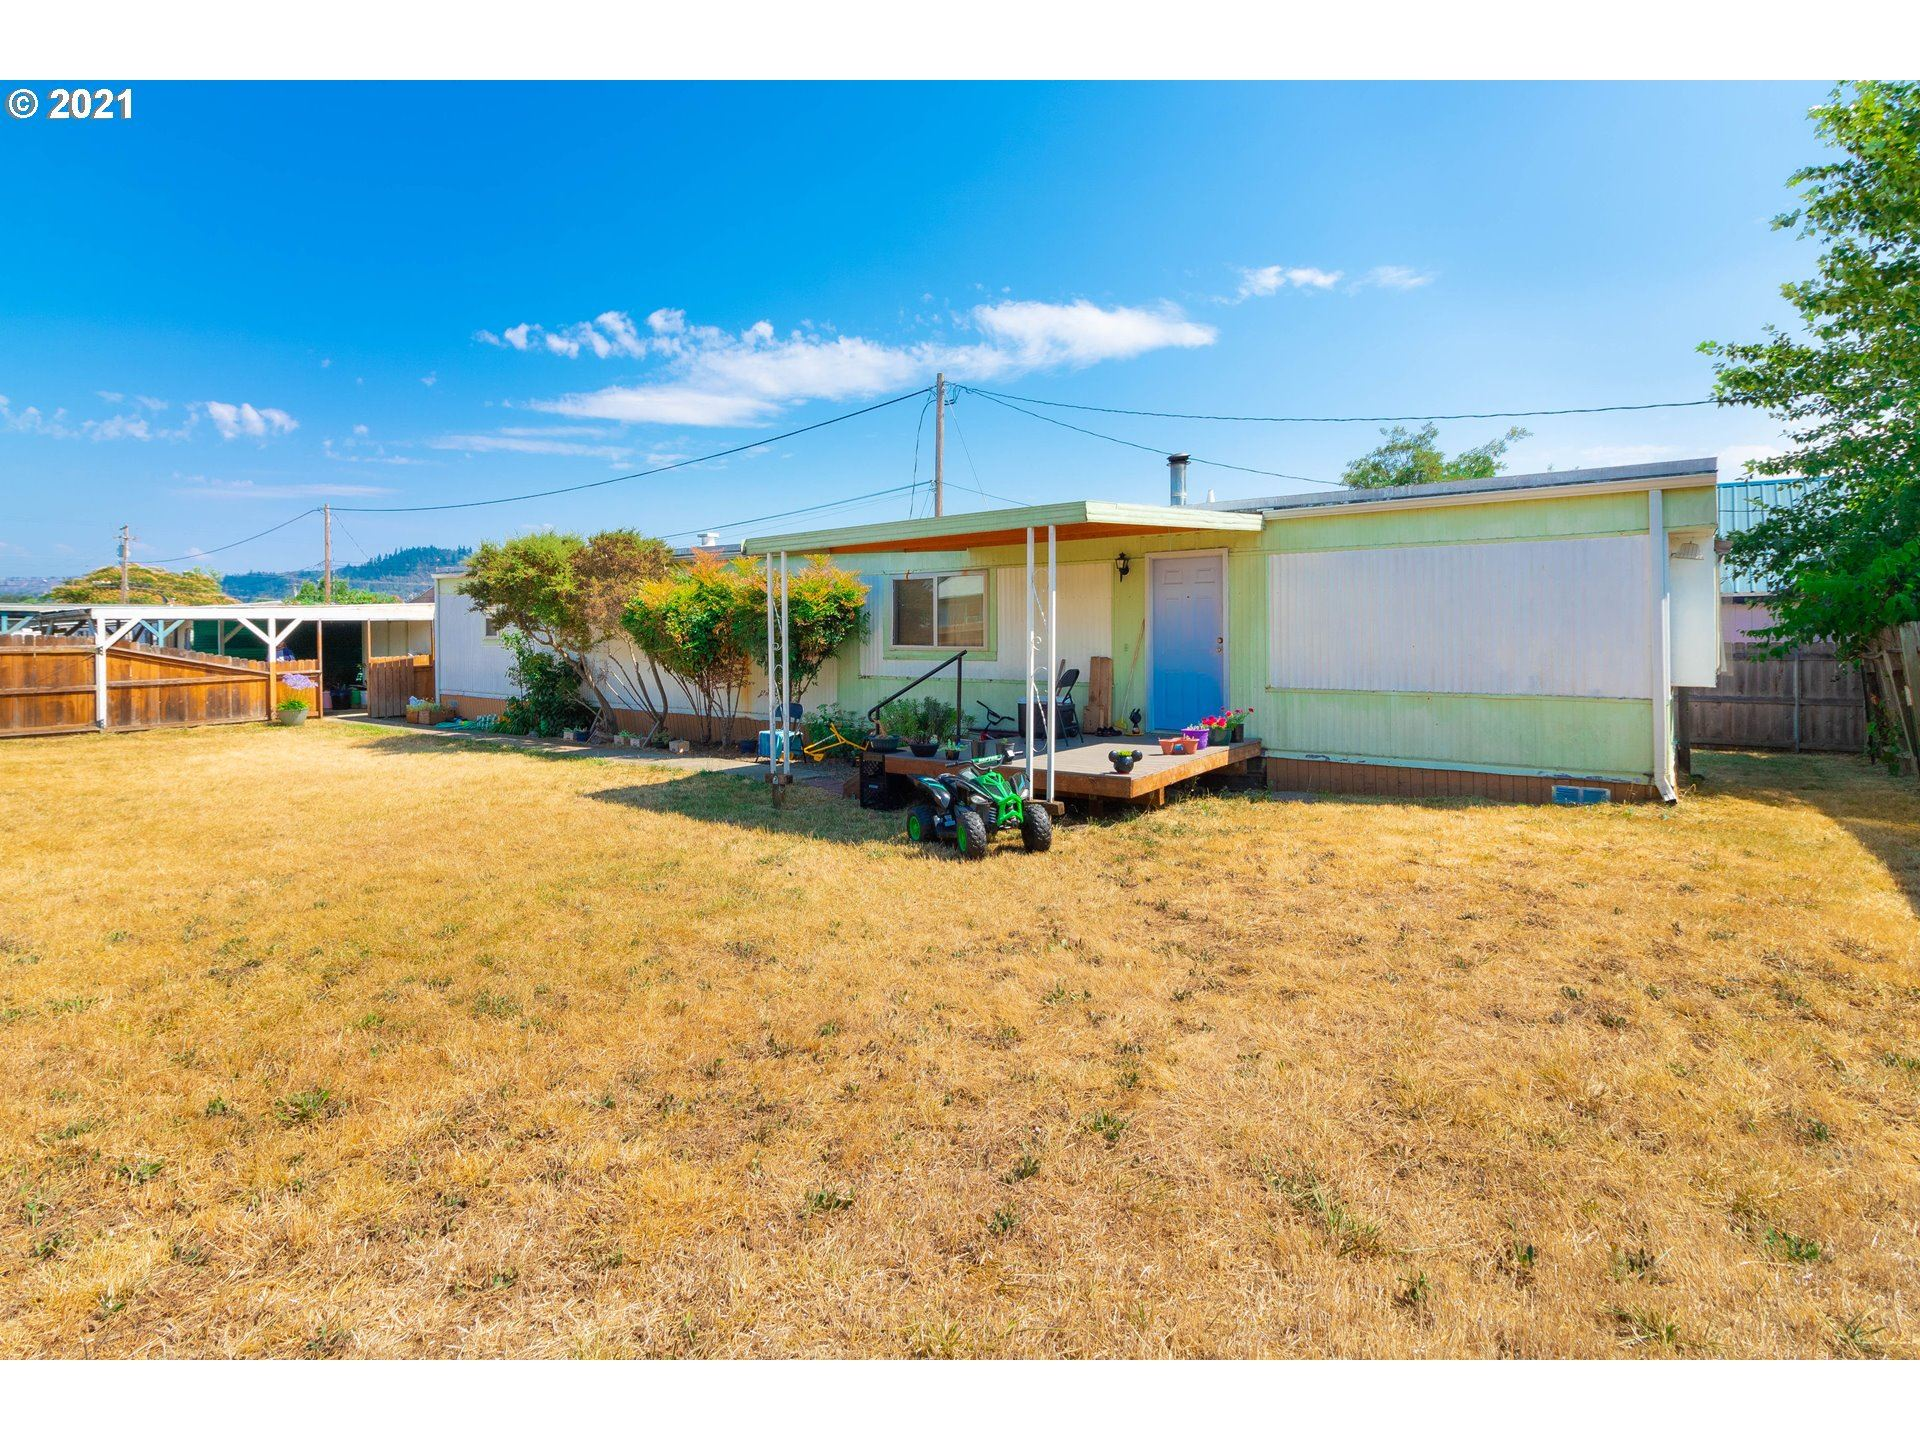 274 NW CIVIL BEND AVE, Winston, OR 97496 - MLS#: 21315227